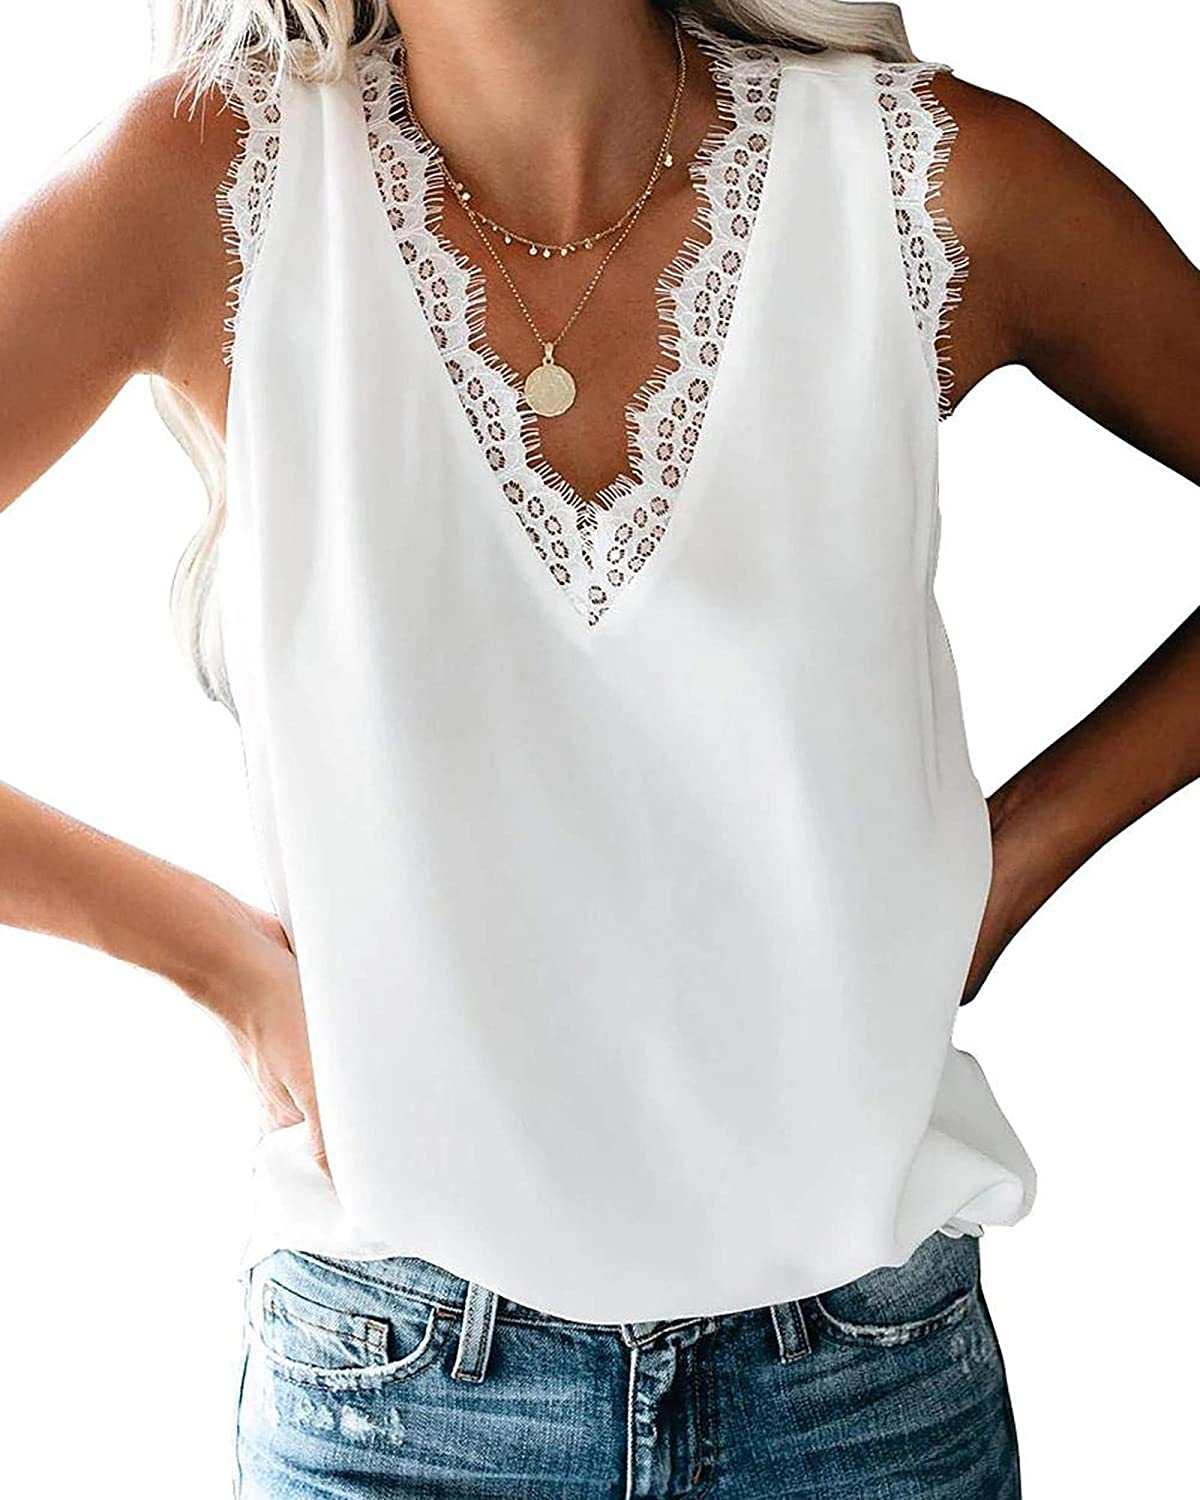 Lace Cami Tank Women Sleeveless Sexy Vest Top Plus Size Camisole Loose Shirt Strappy Blouse